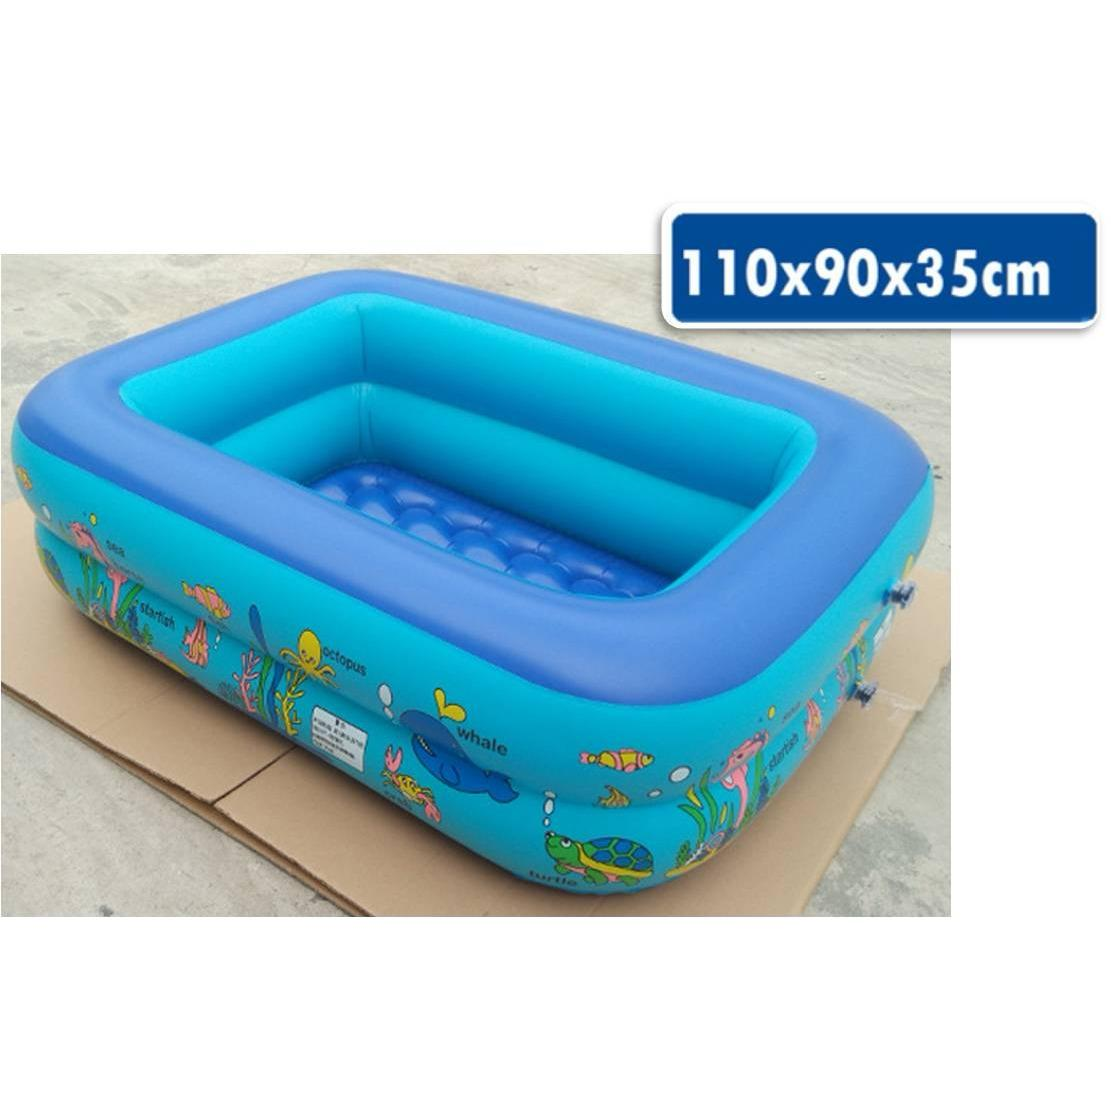 Buy Inflatable Swimming Baby Toddler Kids Child Boy G*Rl Pool Swim Float Bathtub Tub Intex Shower Wading 110 90 35Cm Cheap On Singapore